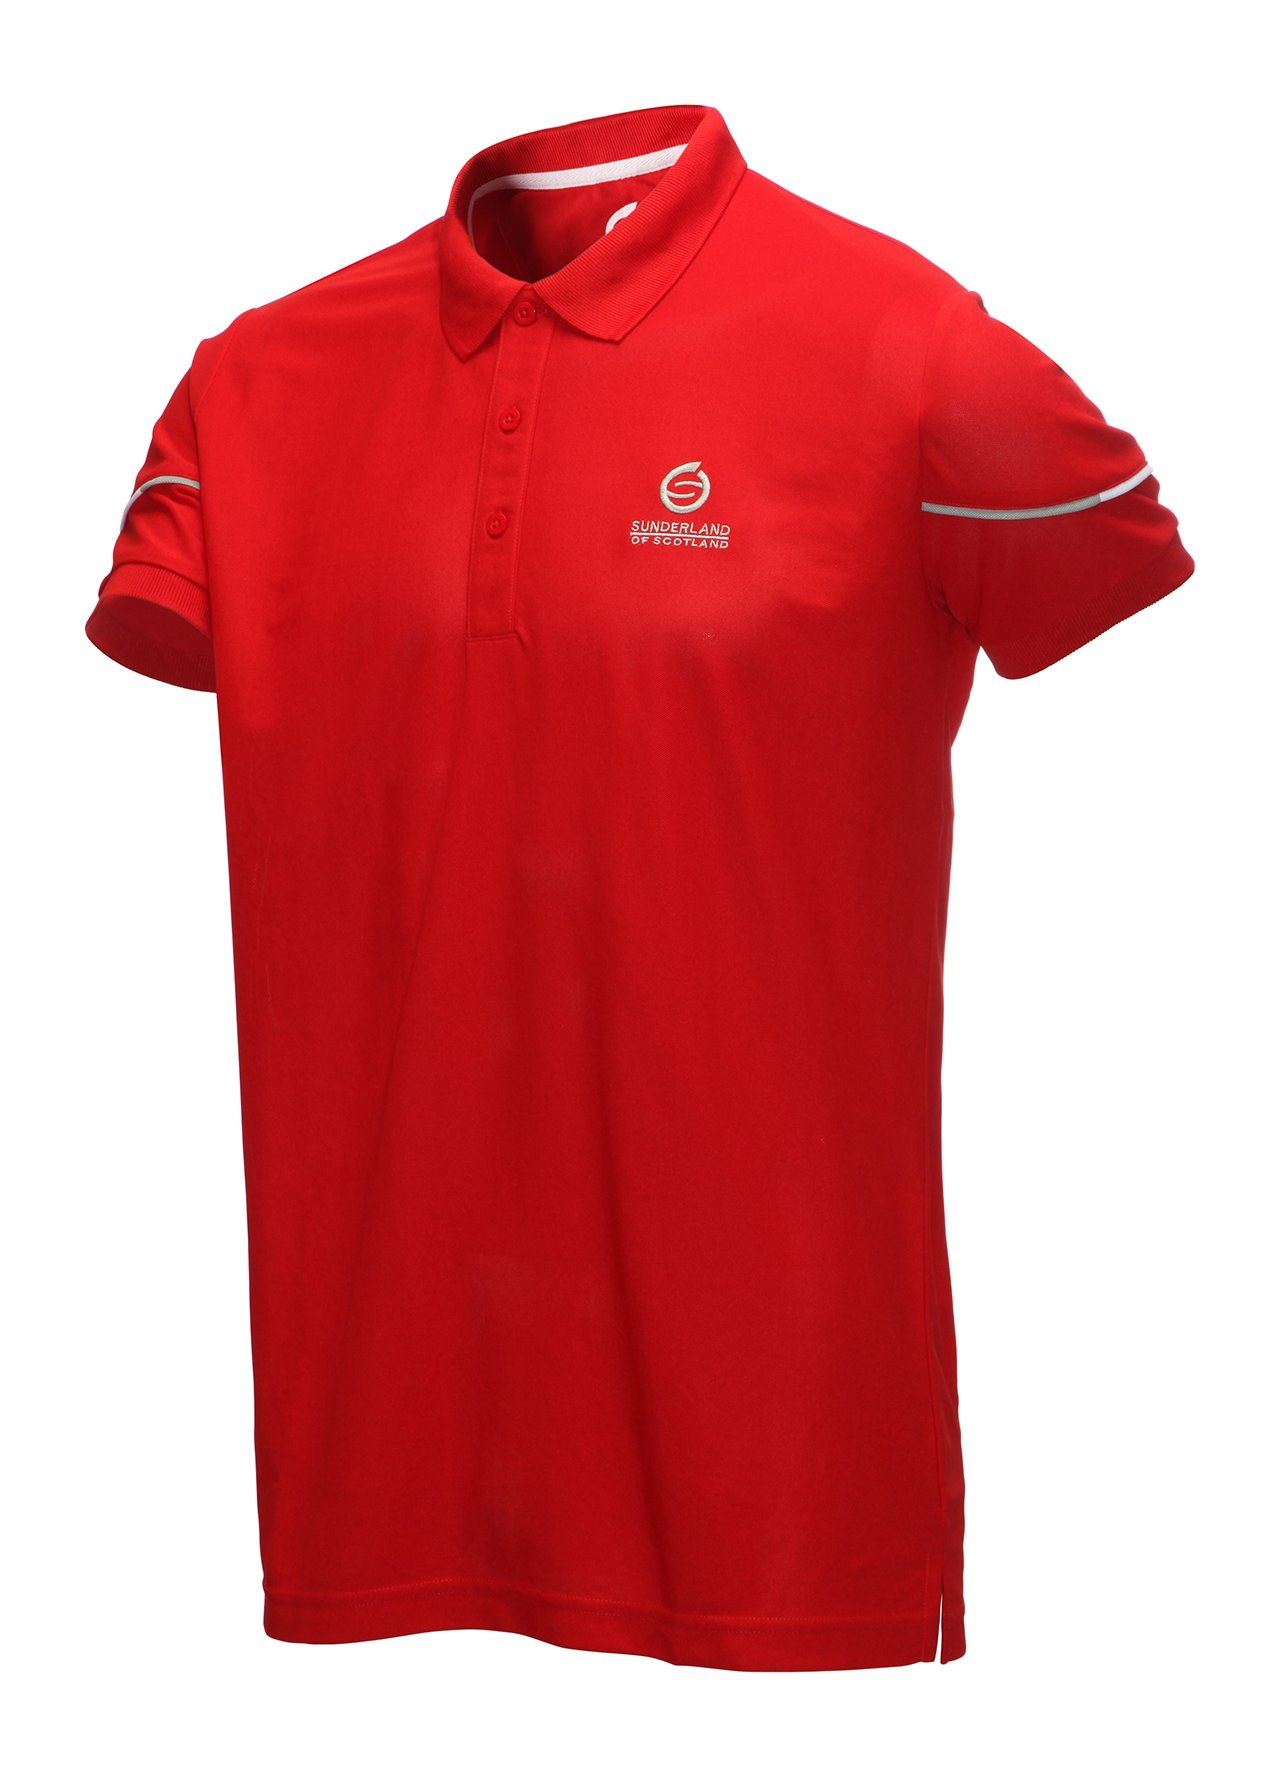 Sunderland solid colour golf polo shirt red extra large ebay